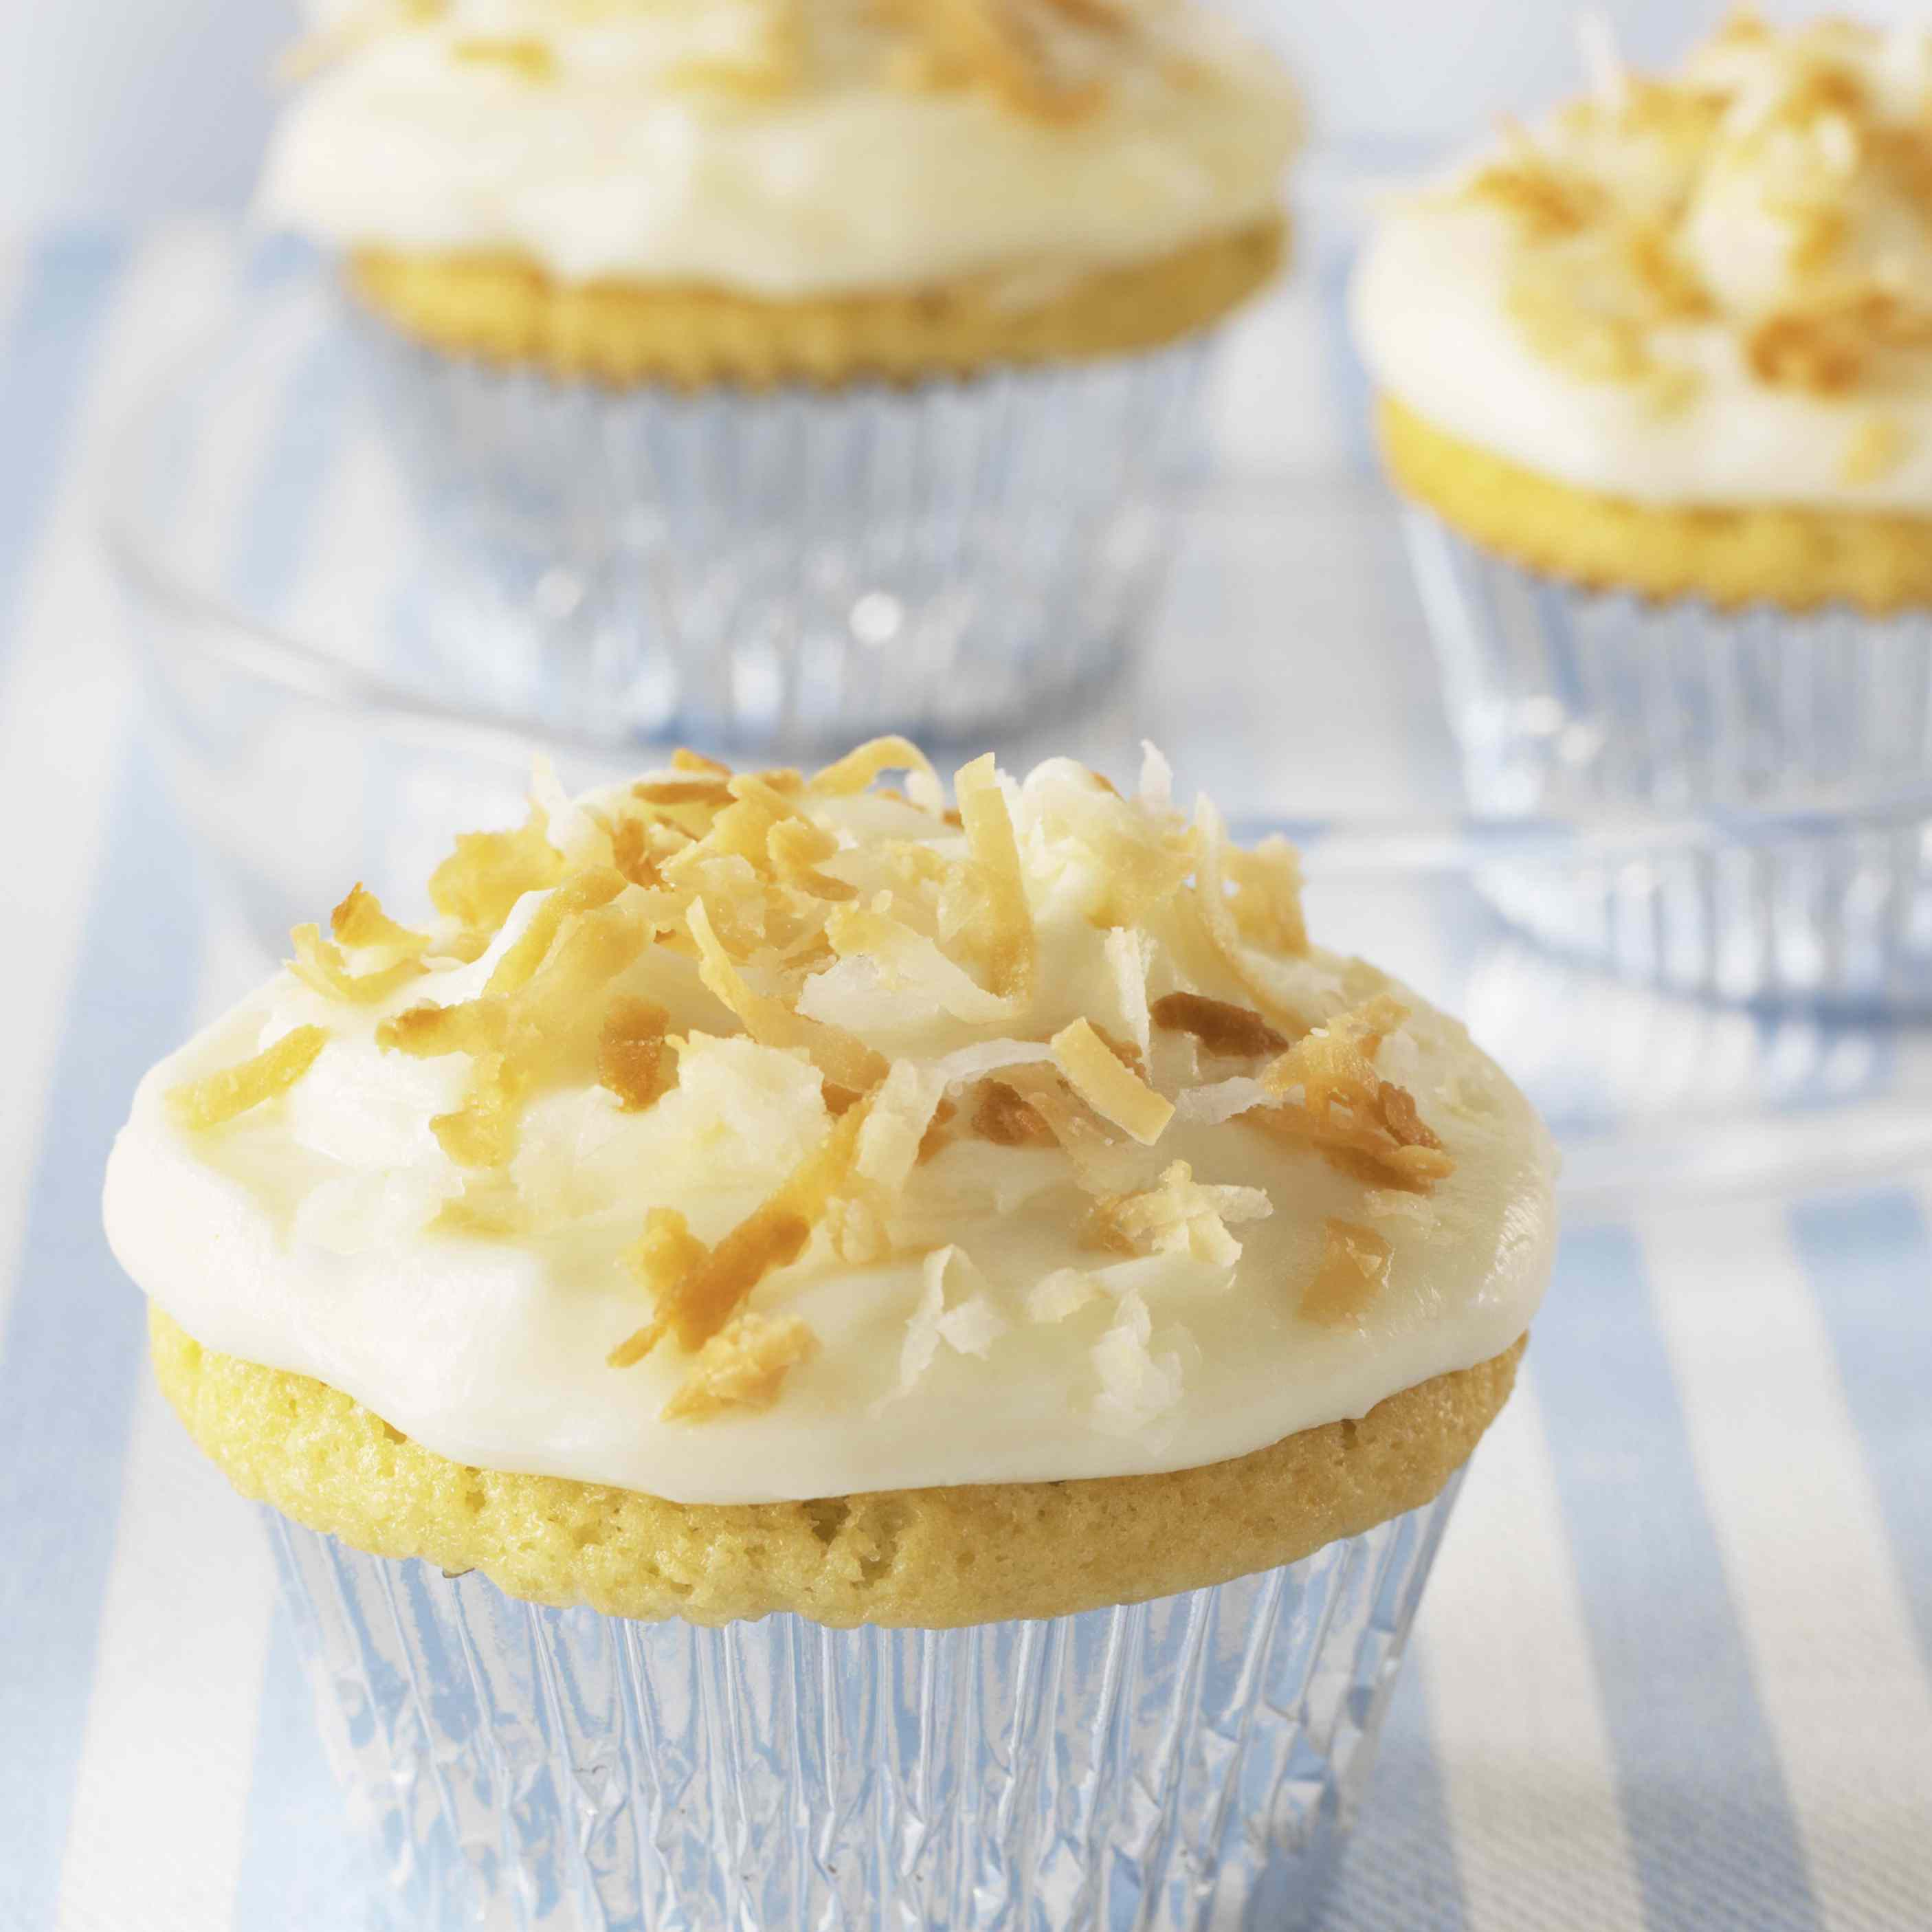 Cupcakes with roasted coconut